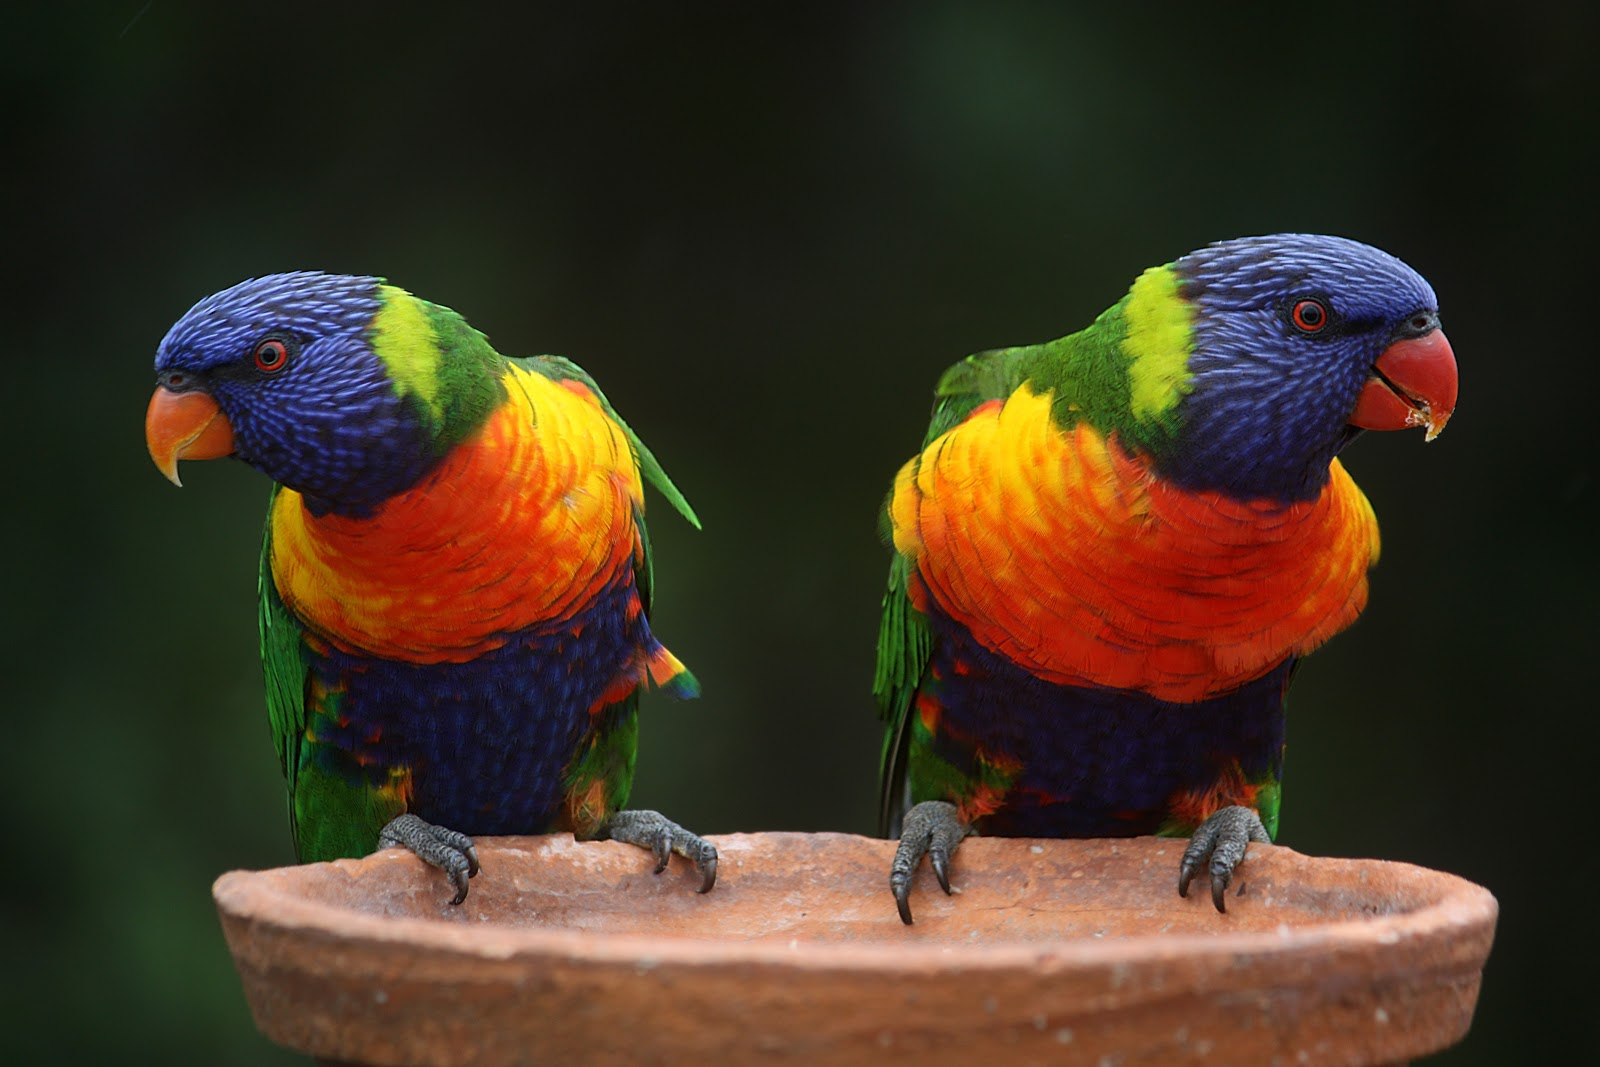 blue-green-and-orange-parrot-birds-pictures